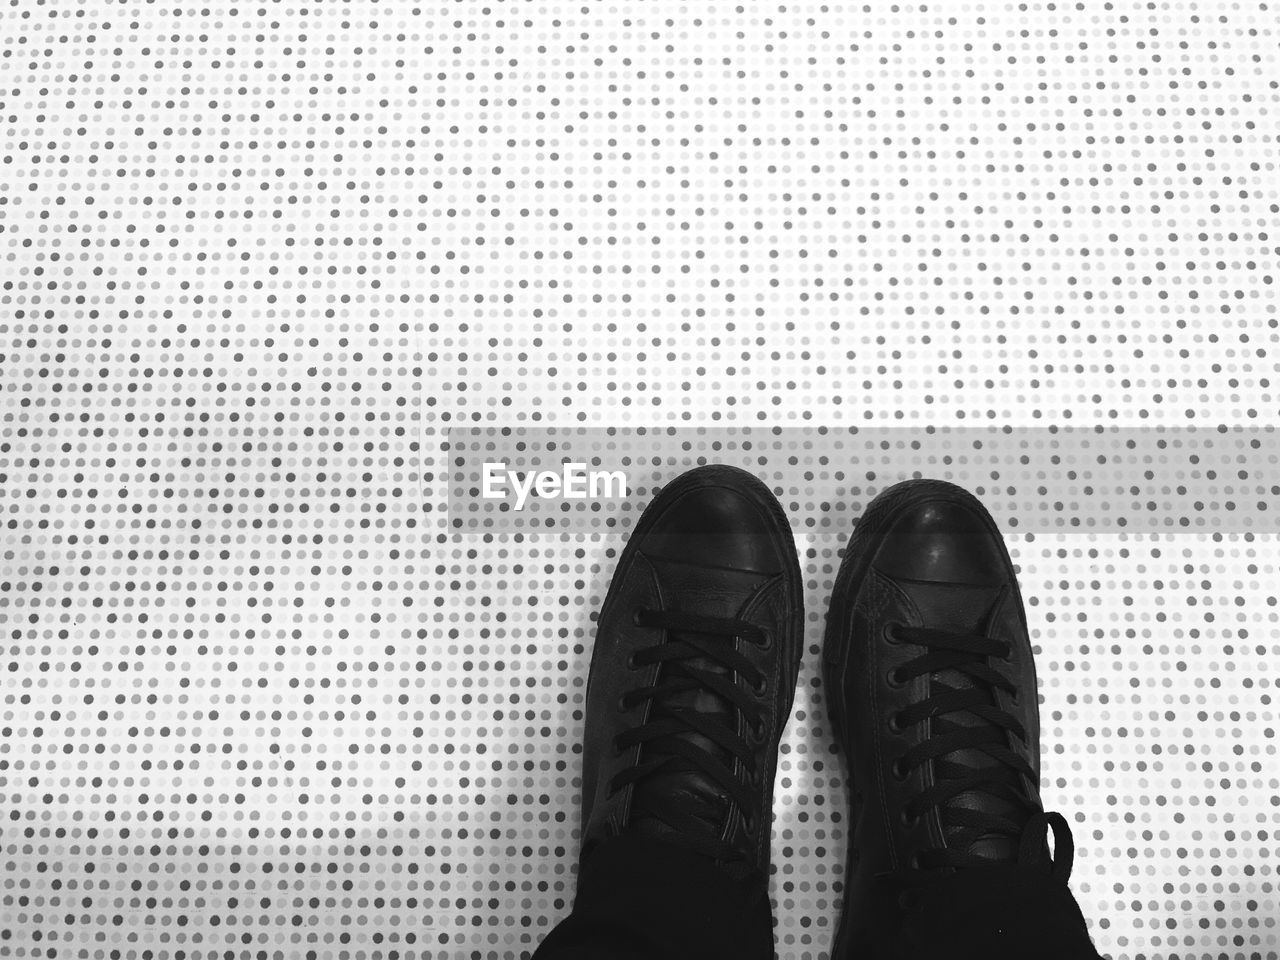 shoe, one person, body part, human body part, standing, low section, human foot, white color, black color, human leg, indoors, lifestyles, men, pair, pattern, clothing, leisure activity, personal perspective, real people, flooring, leather, dress shoe